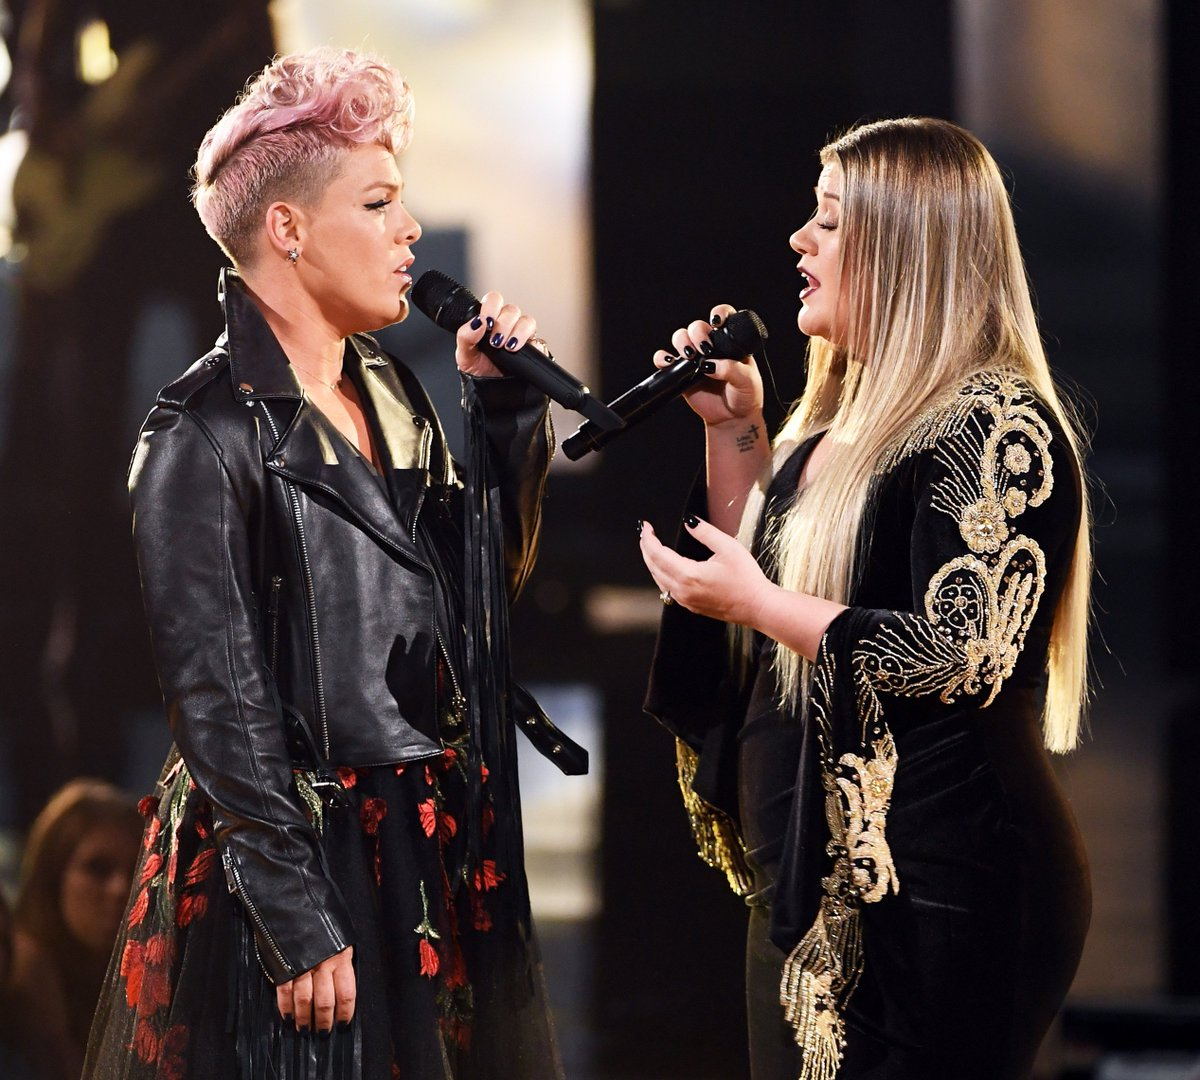 RT @AMAs: Two strong women in music 💪  @pink @kelly_clarkson #PINKxAMAs #KELLYxAMAs #AMAs https://t.co/BbMMzWss9g